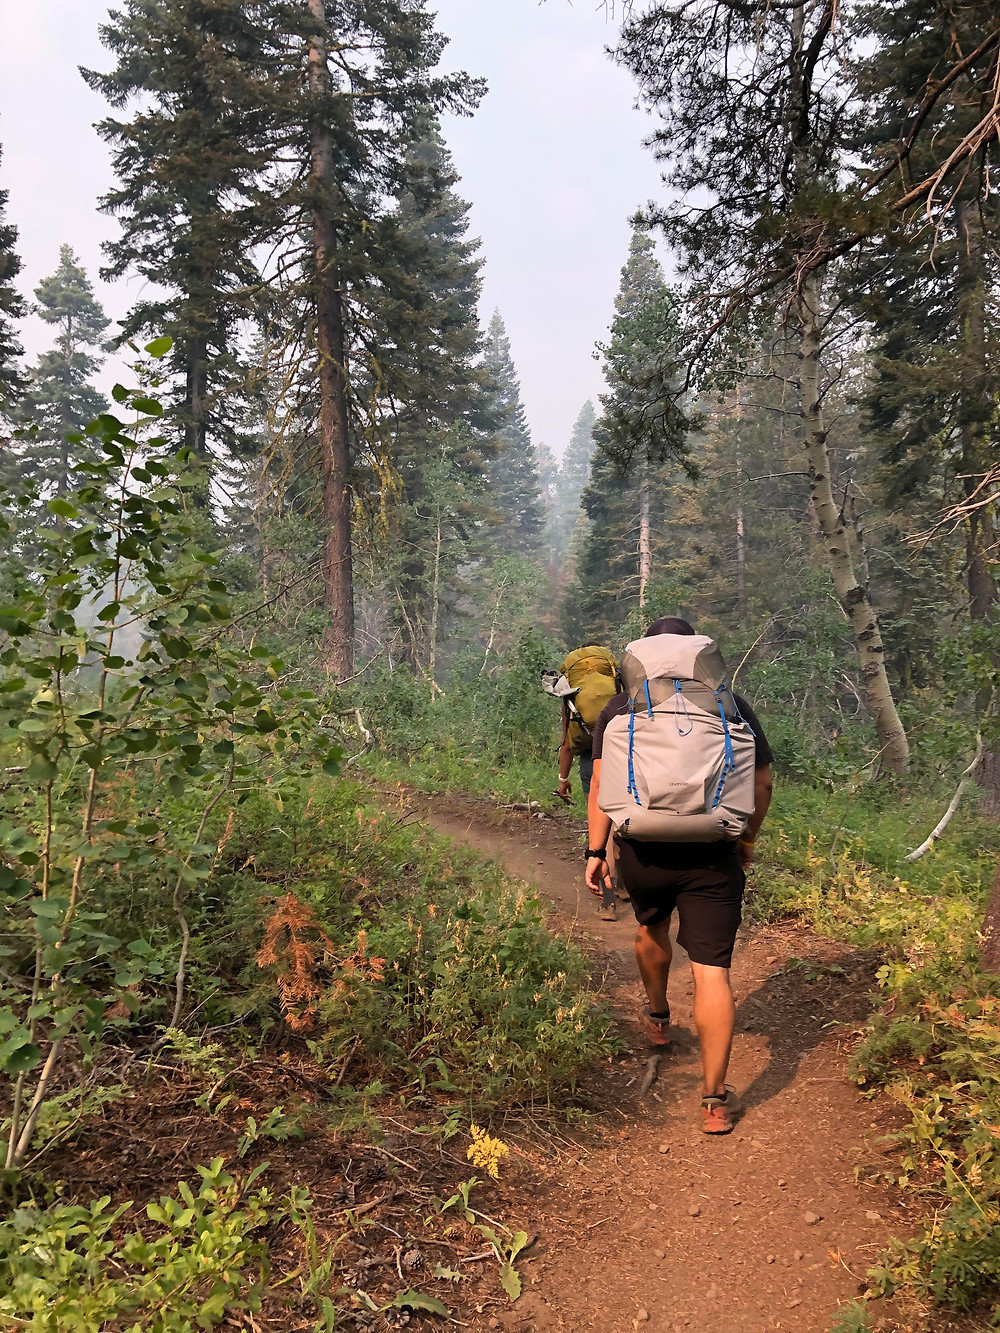 Smoke and haze batter the lungs of backpackers along the Tahoe Rim Trail